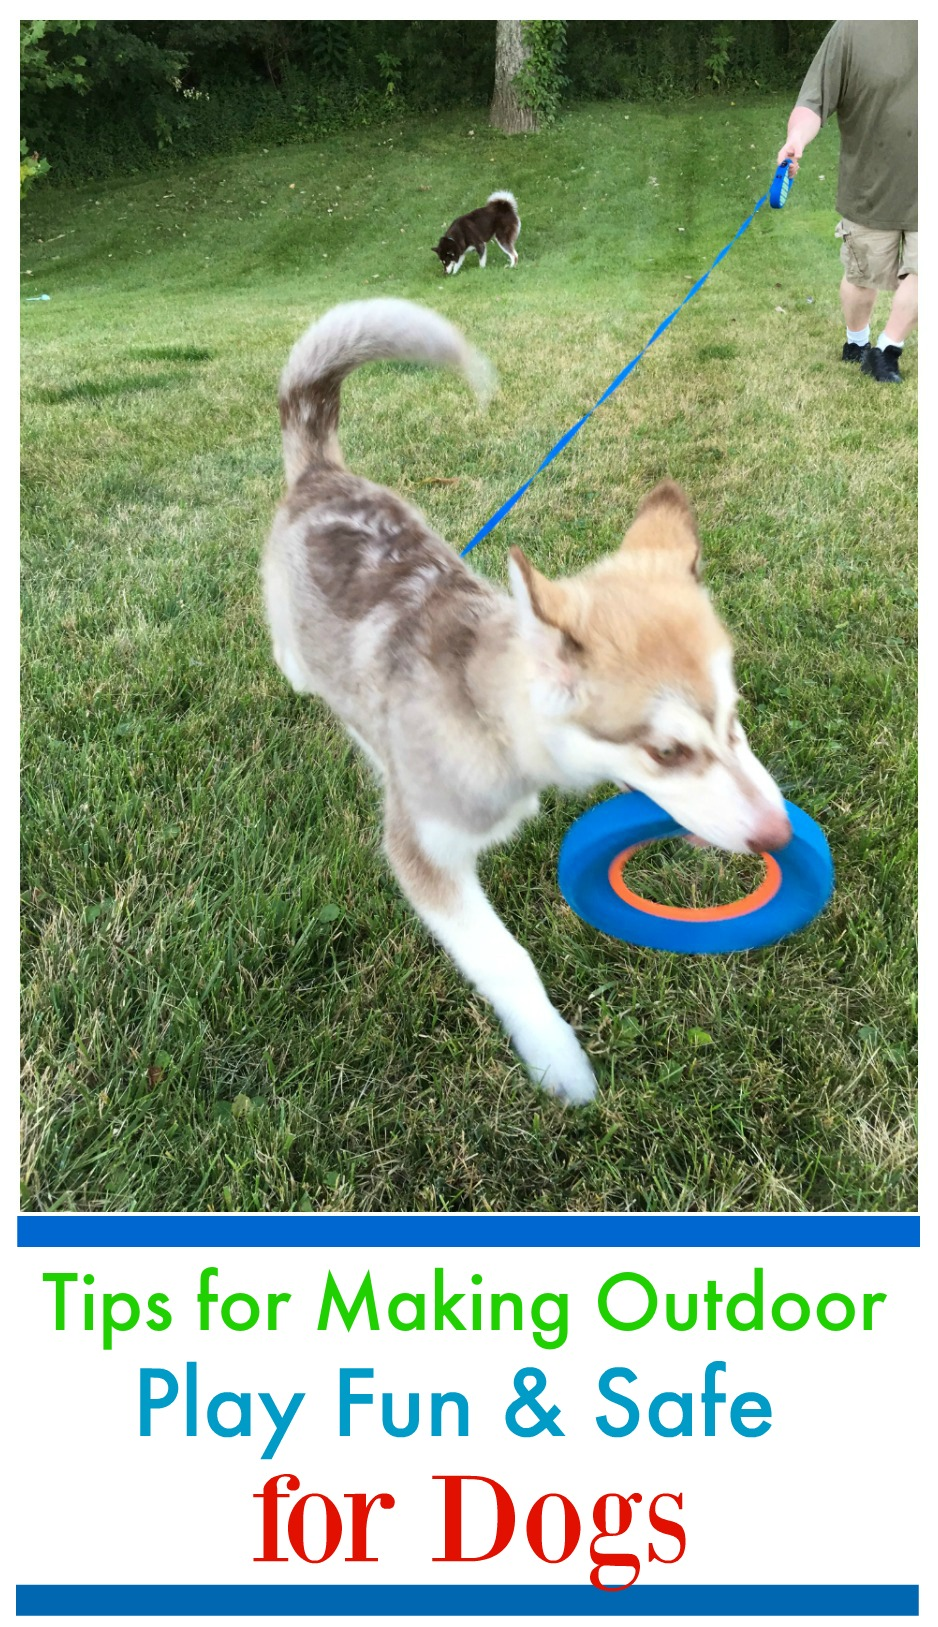 Yard Toys For Dogs : Tips for making outdoor play fun safe dogs budget